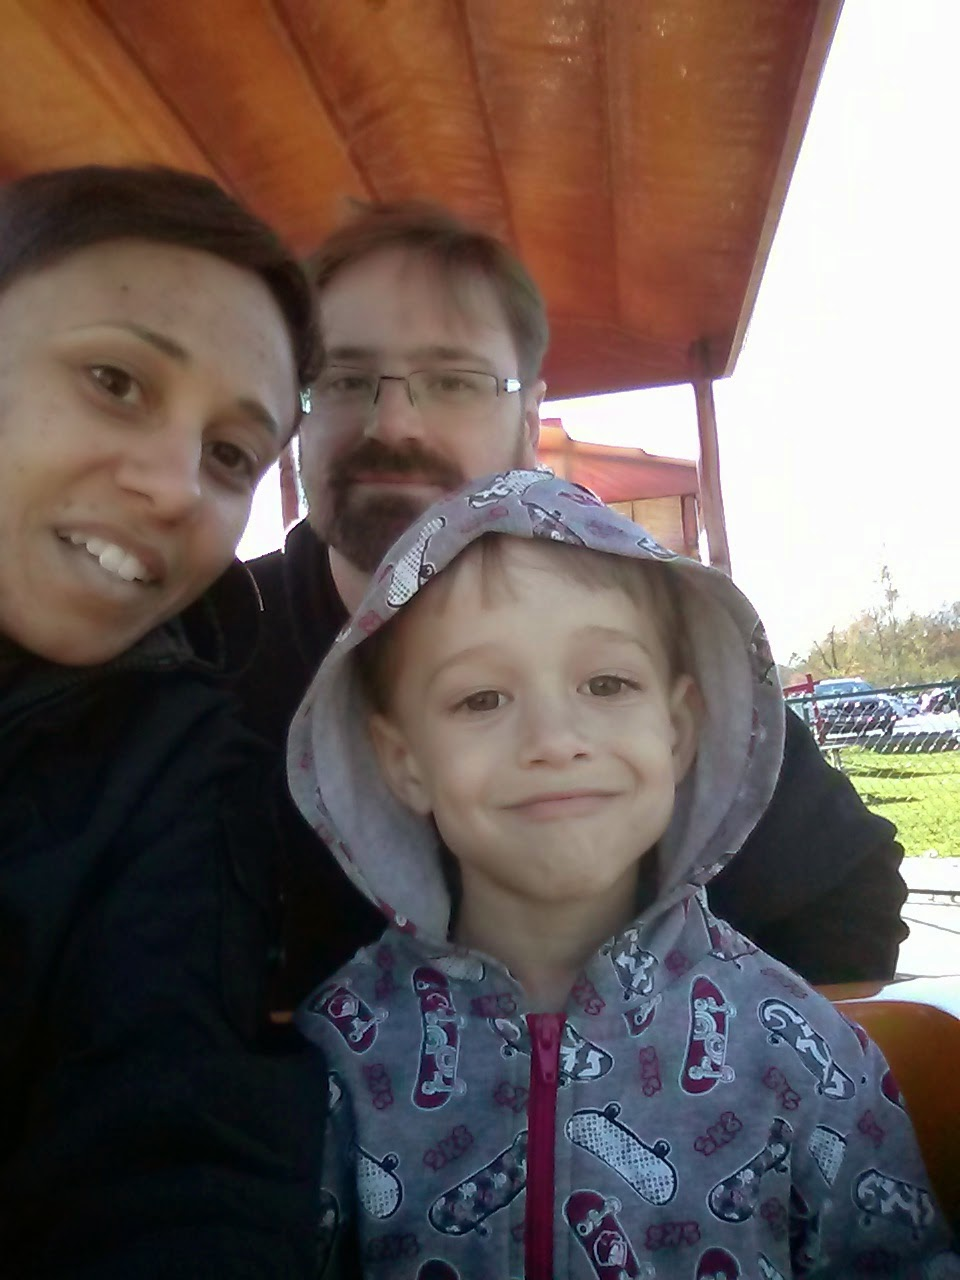 family selfie on Big Apple train Colborne, ON copyright 2014 OneQuarterMama.ca